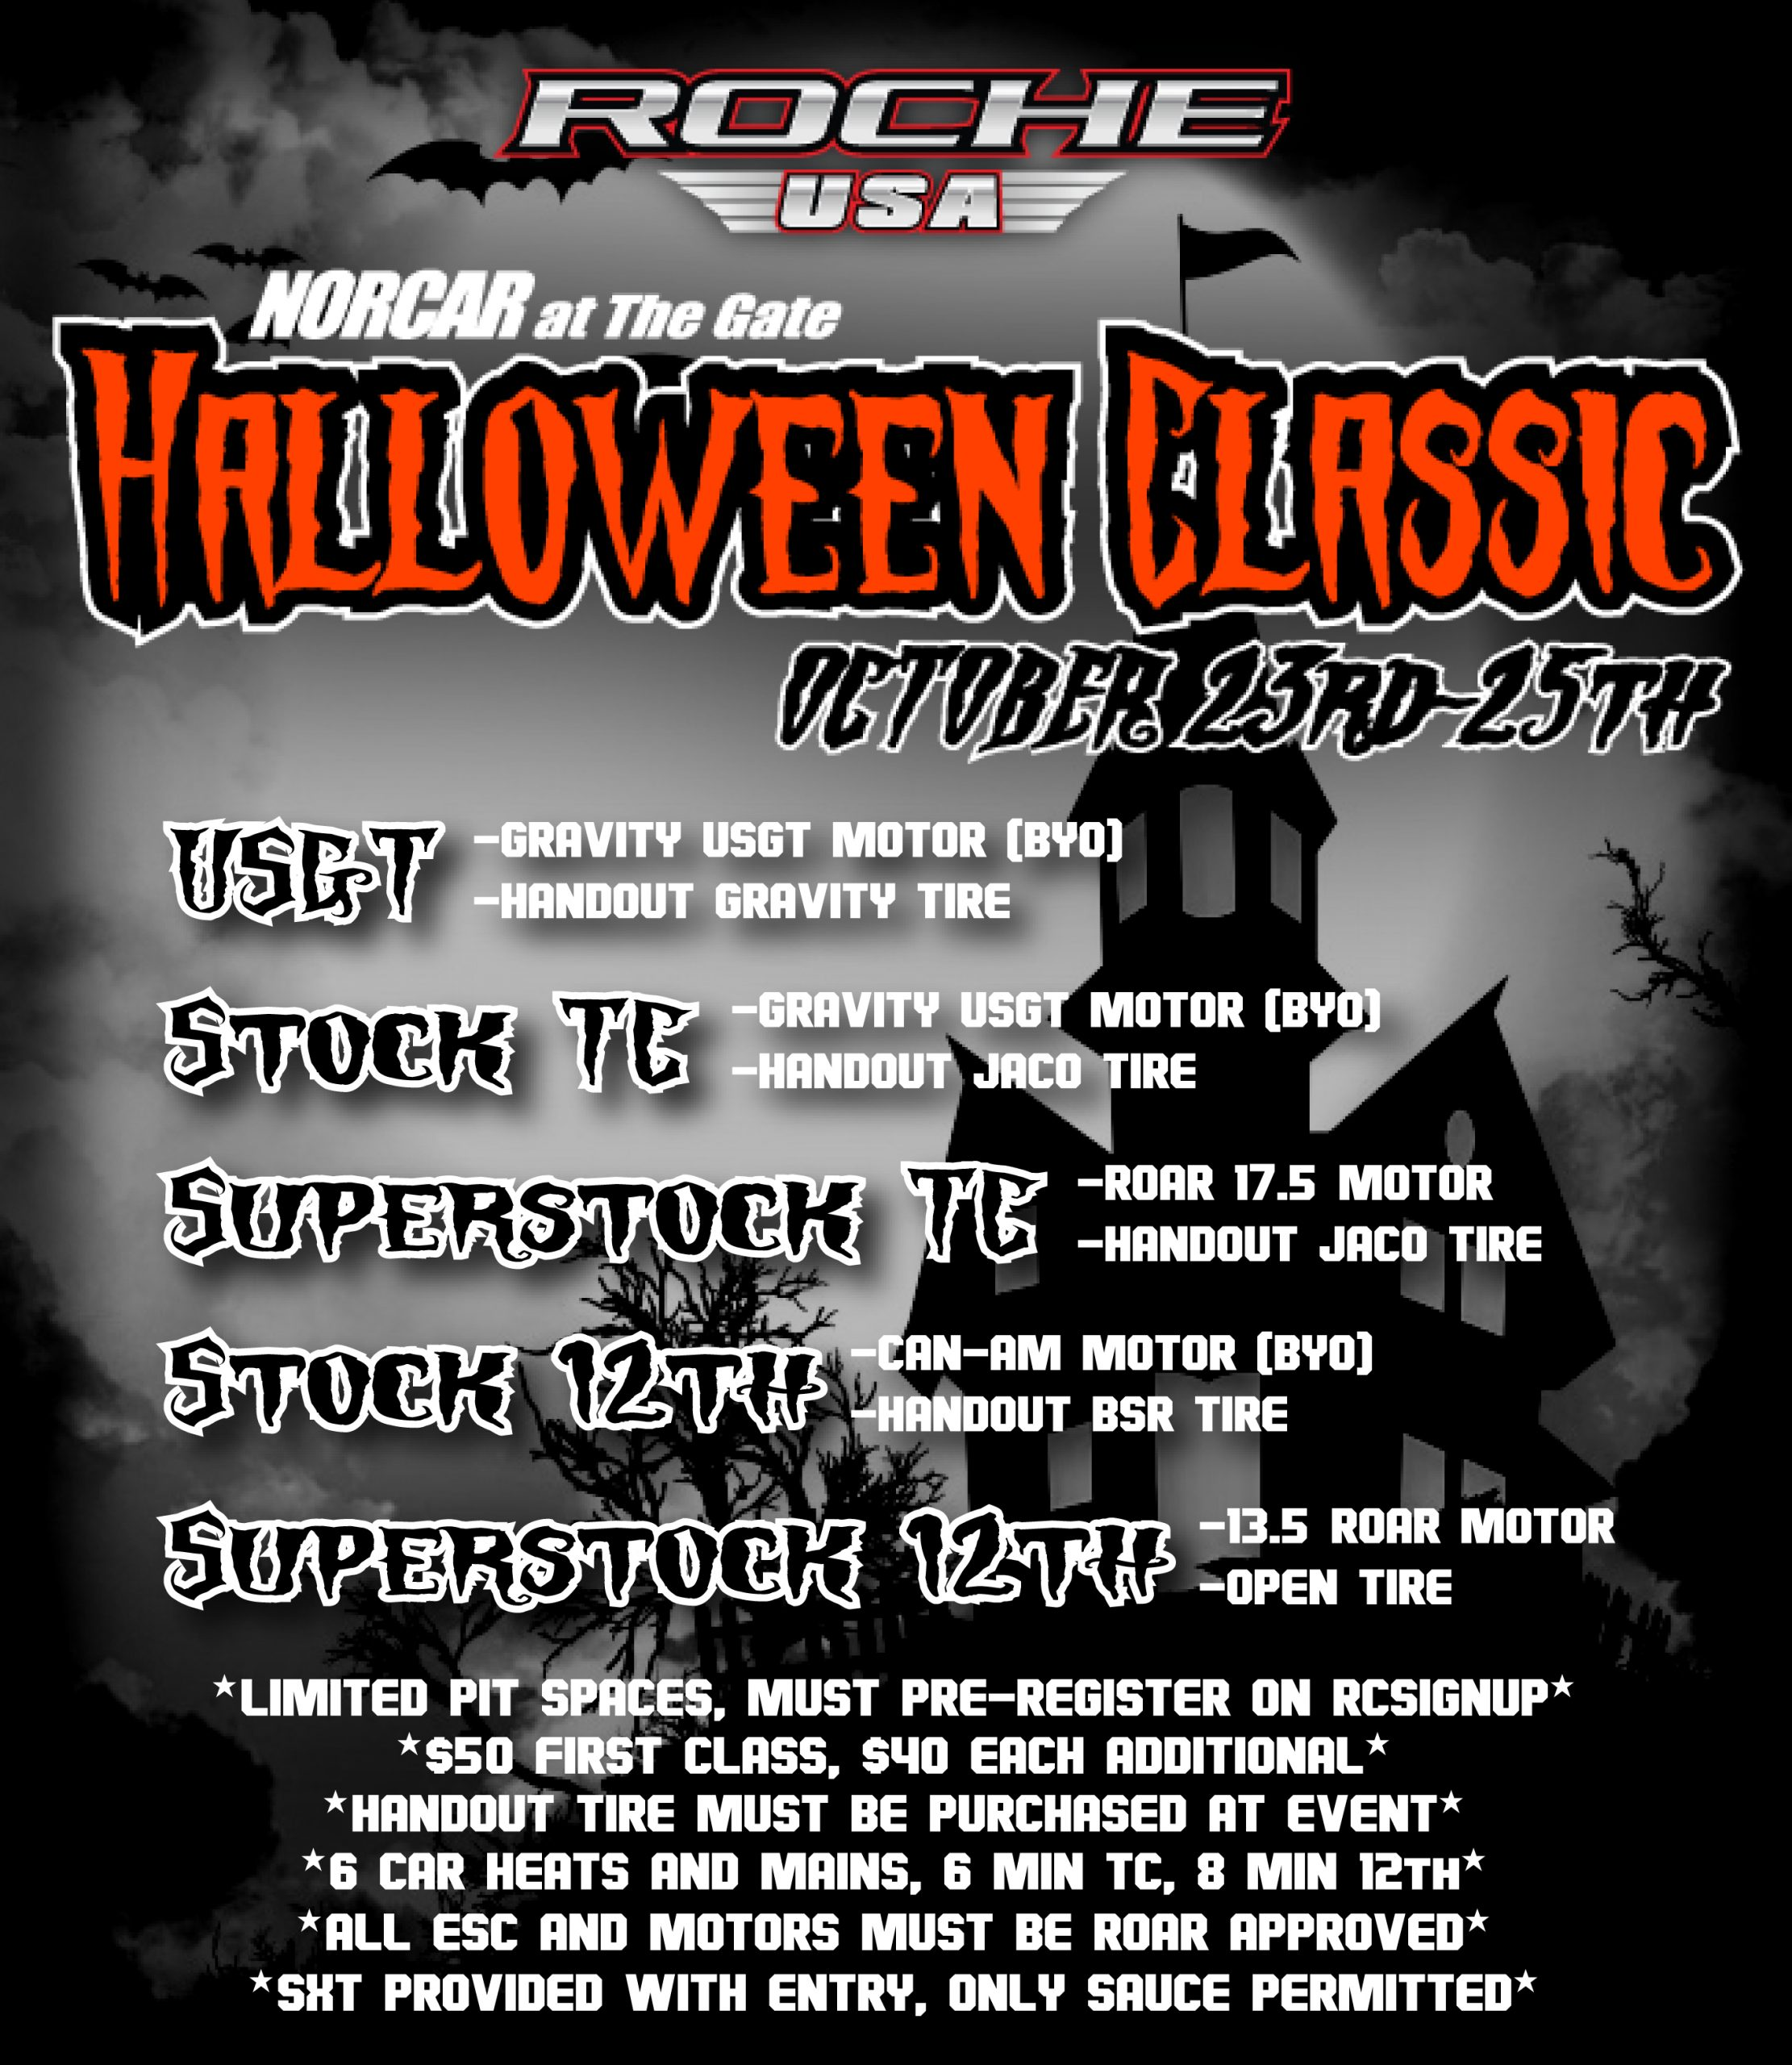 2020 Halloween Classic At The Gate Photos NORCAR Racing – R/C Racing at The Gate